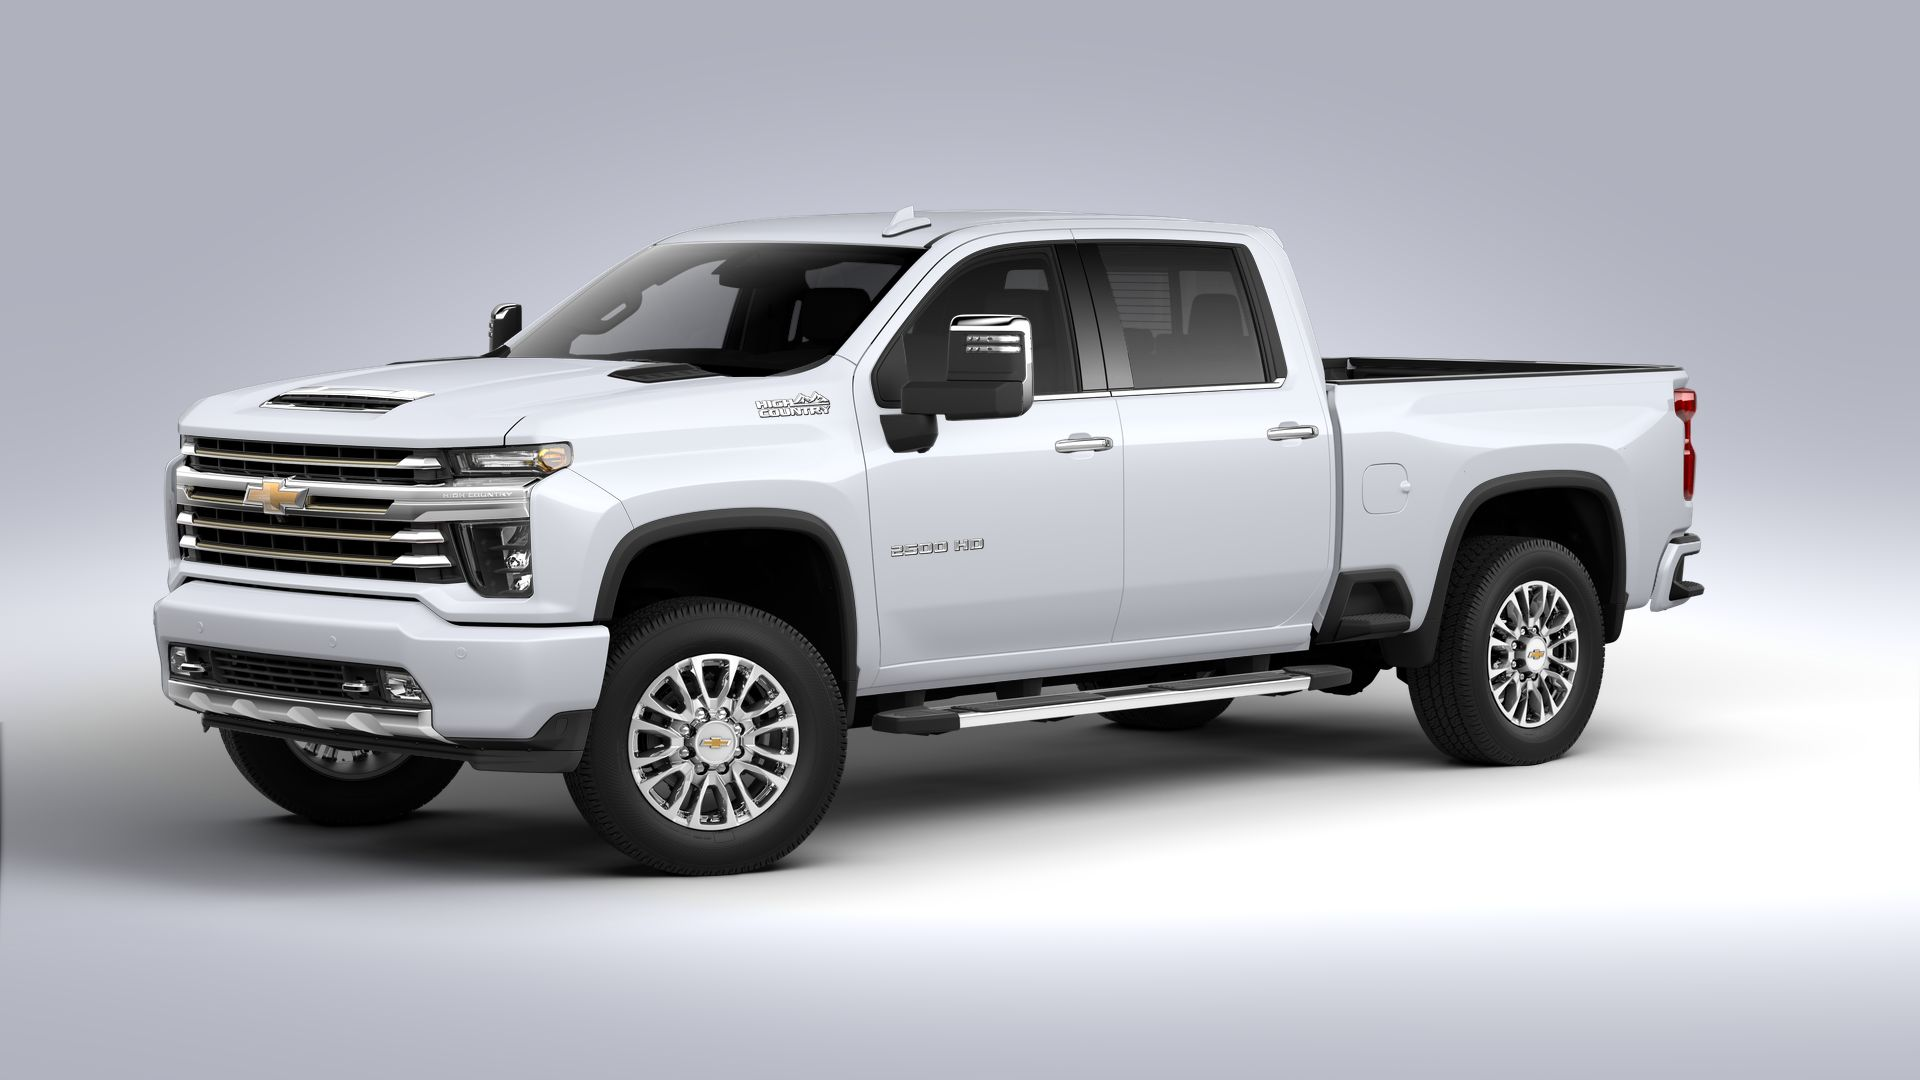 New 2021 Chevrolet Silverado 2500 HD High Country FOUR WHEEL DRIVE Crew Cab